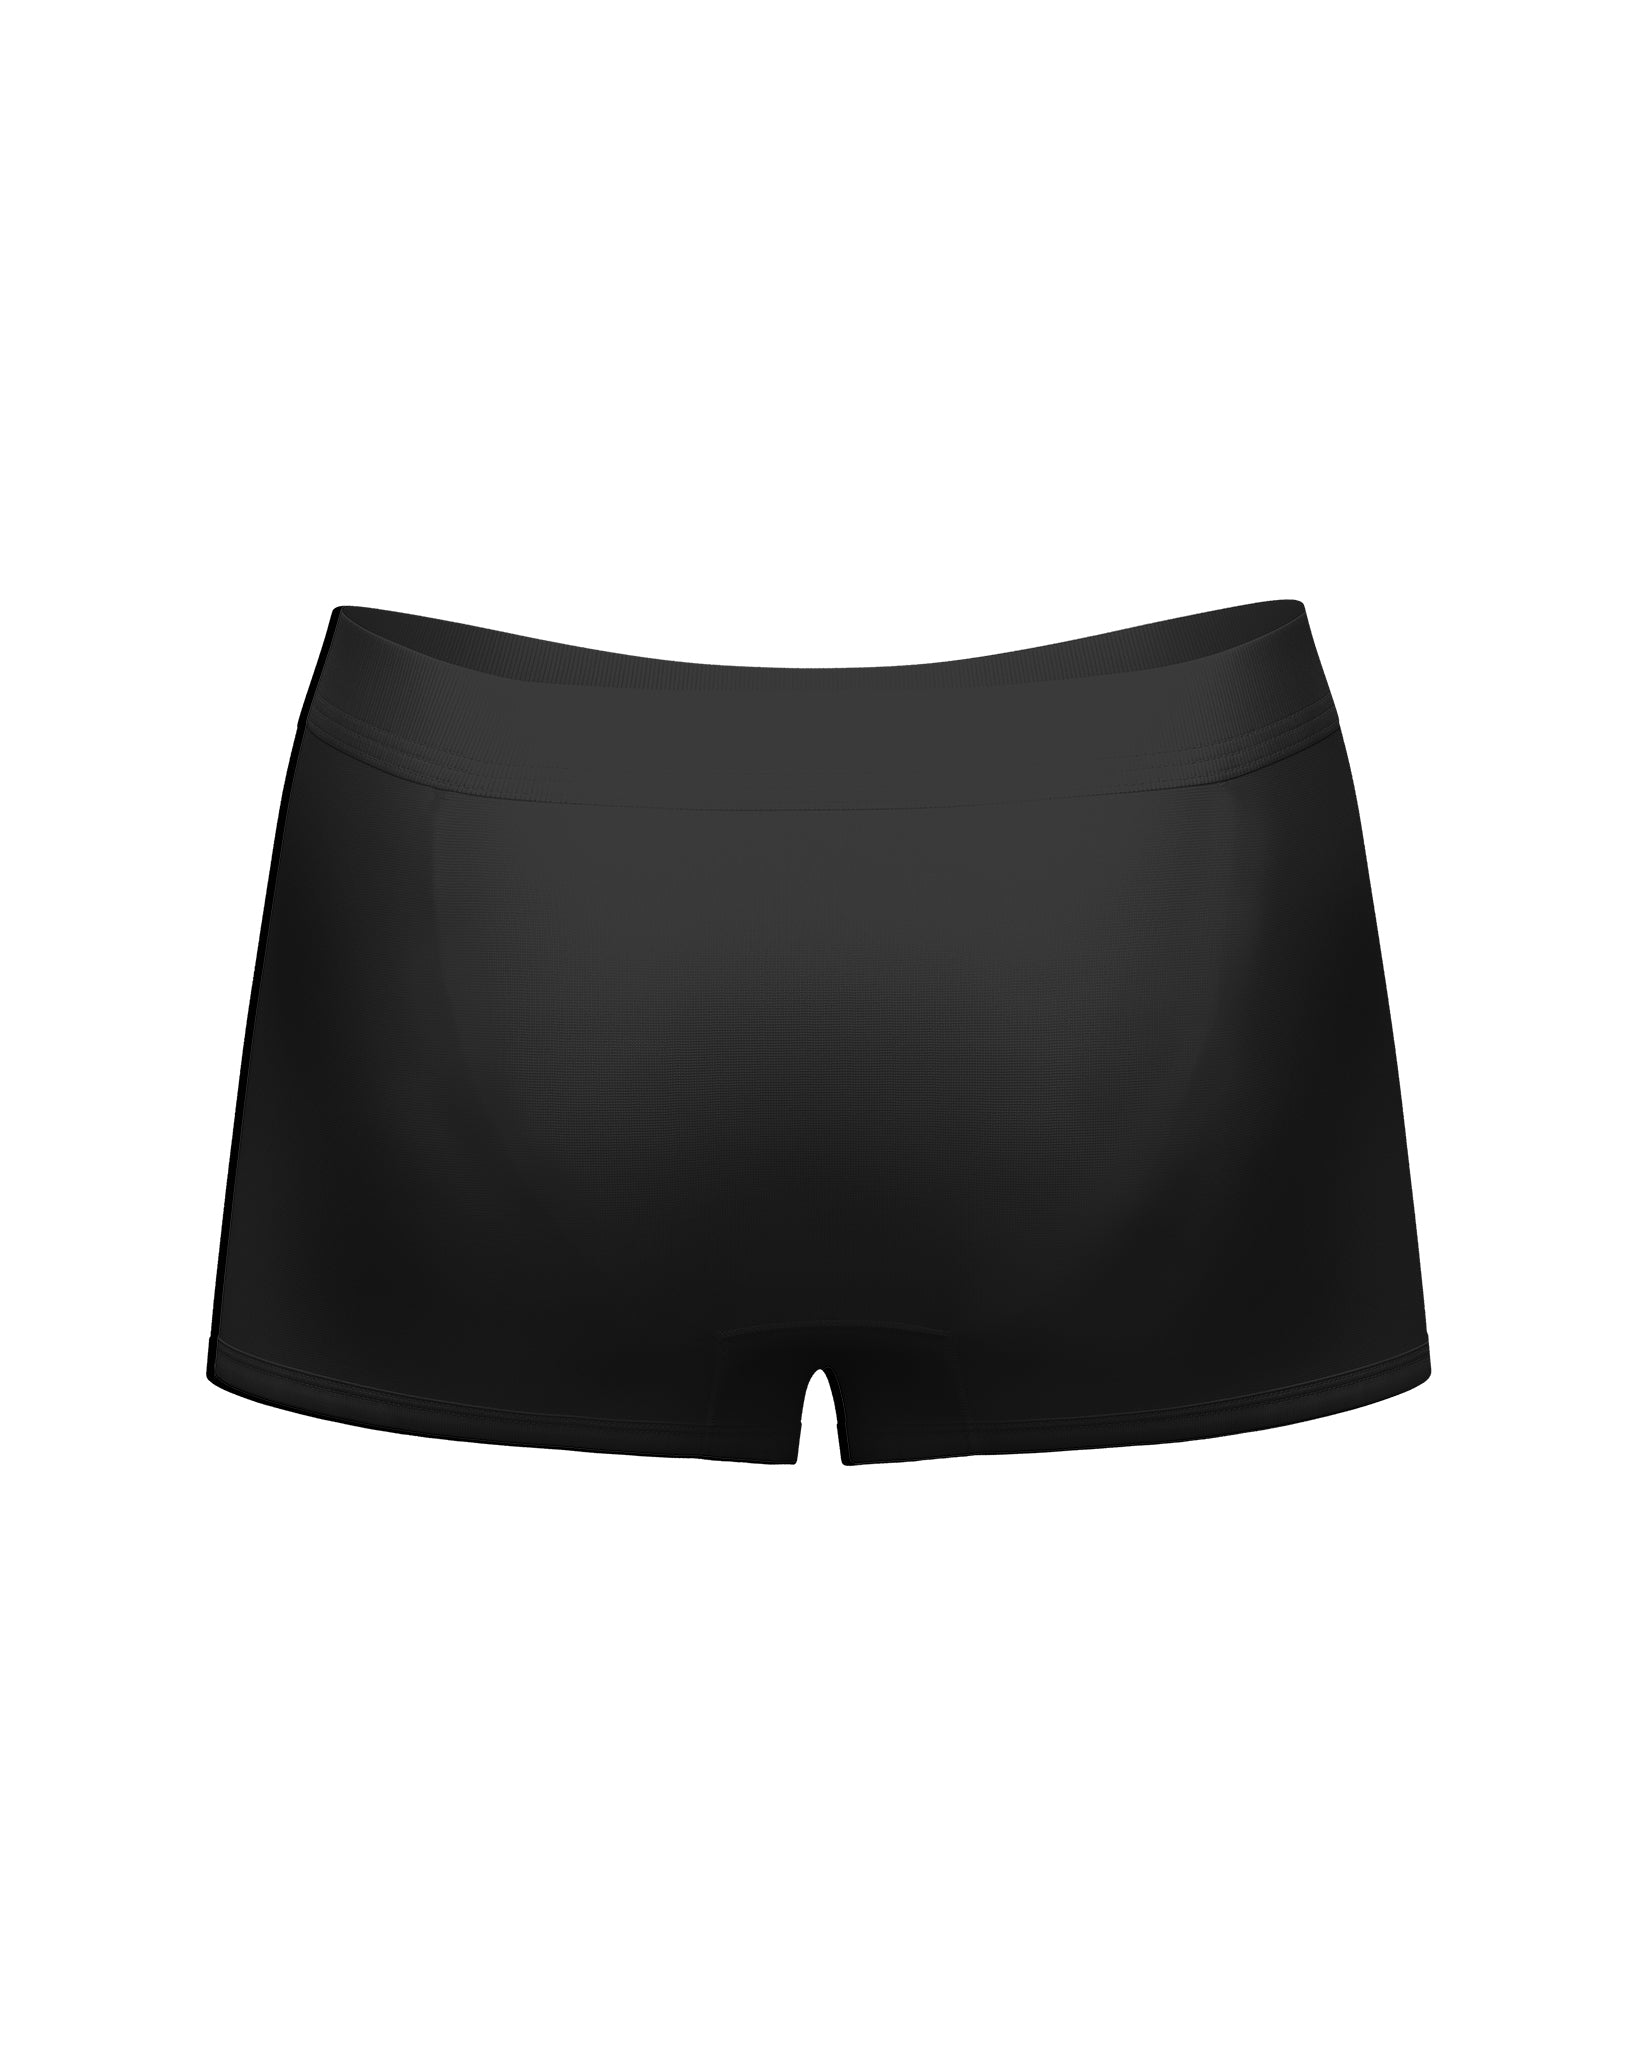 Cairns Taipans 20/21 Mens Trunks Black